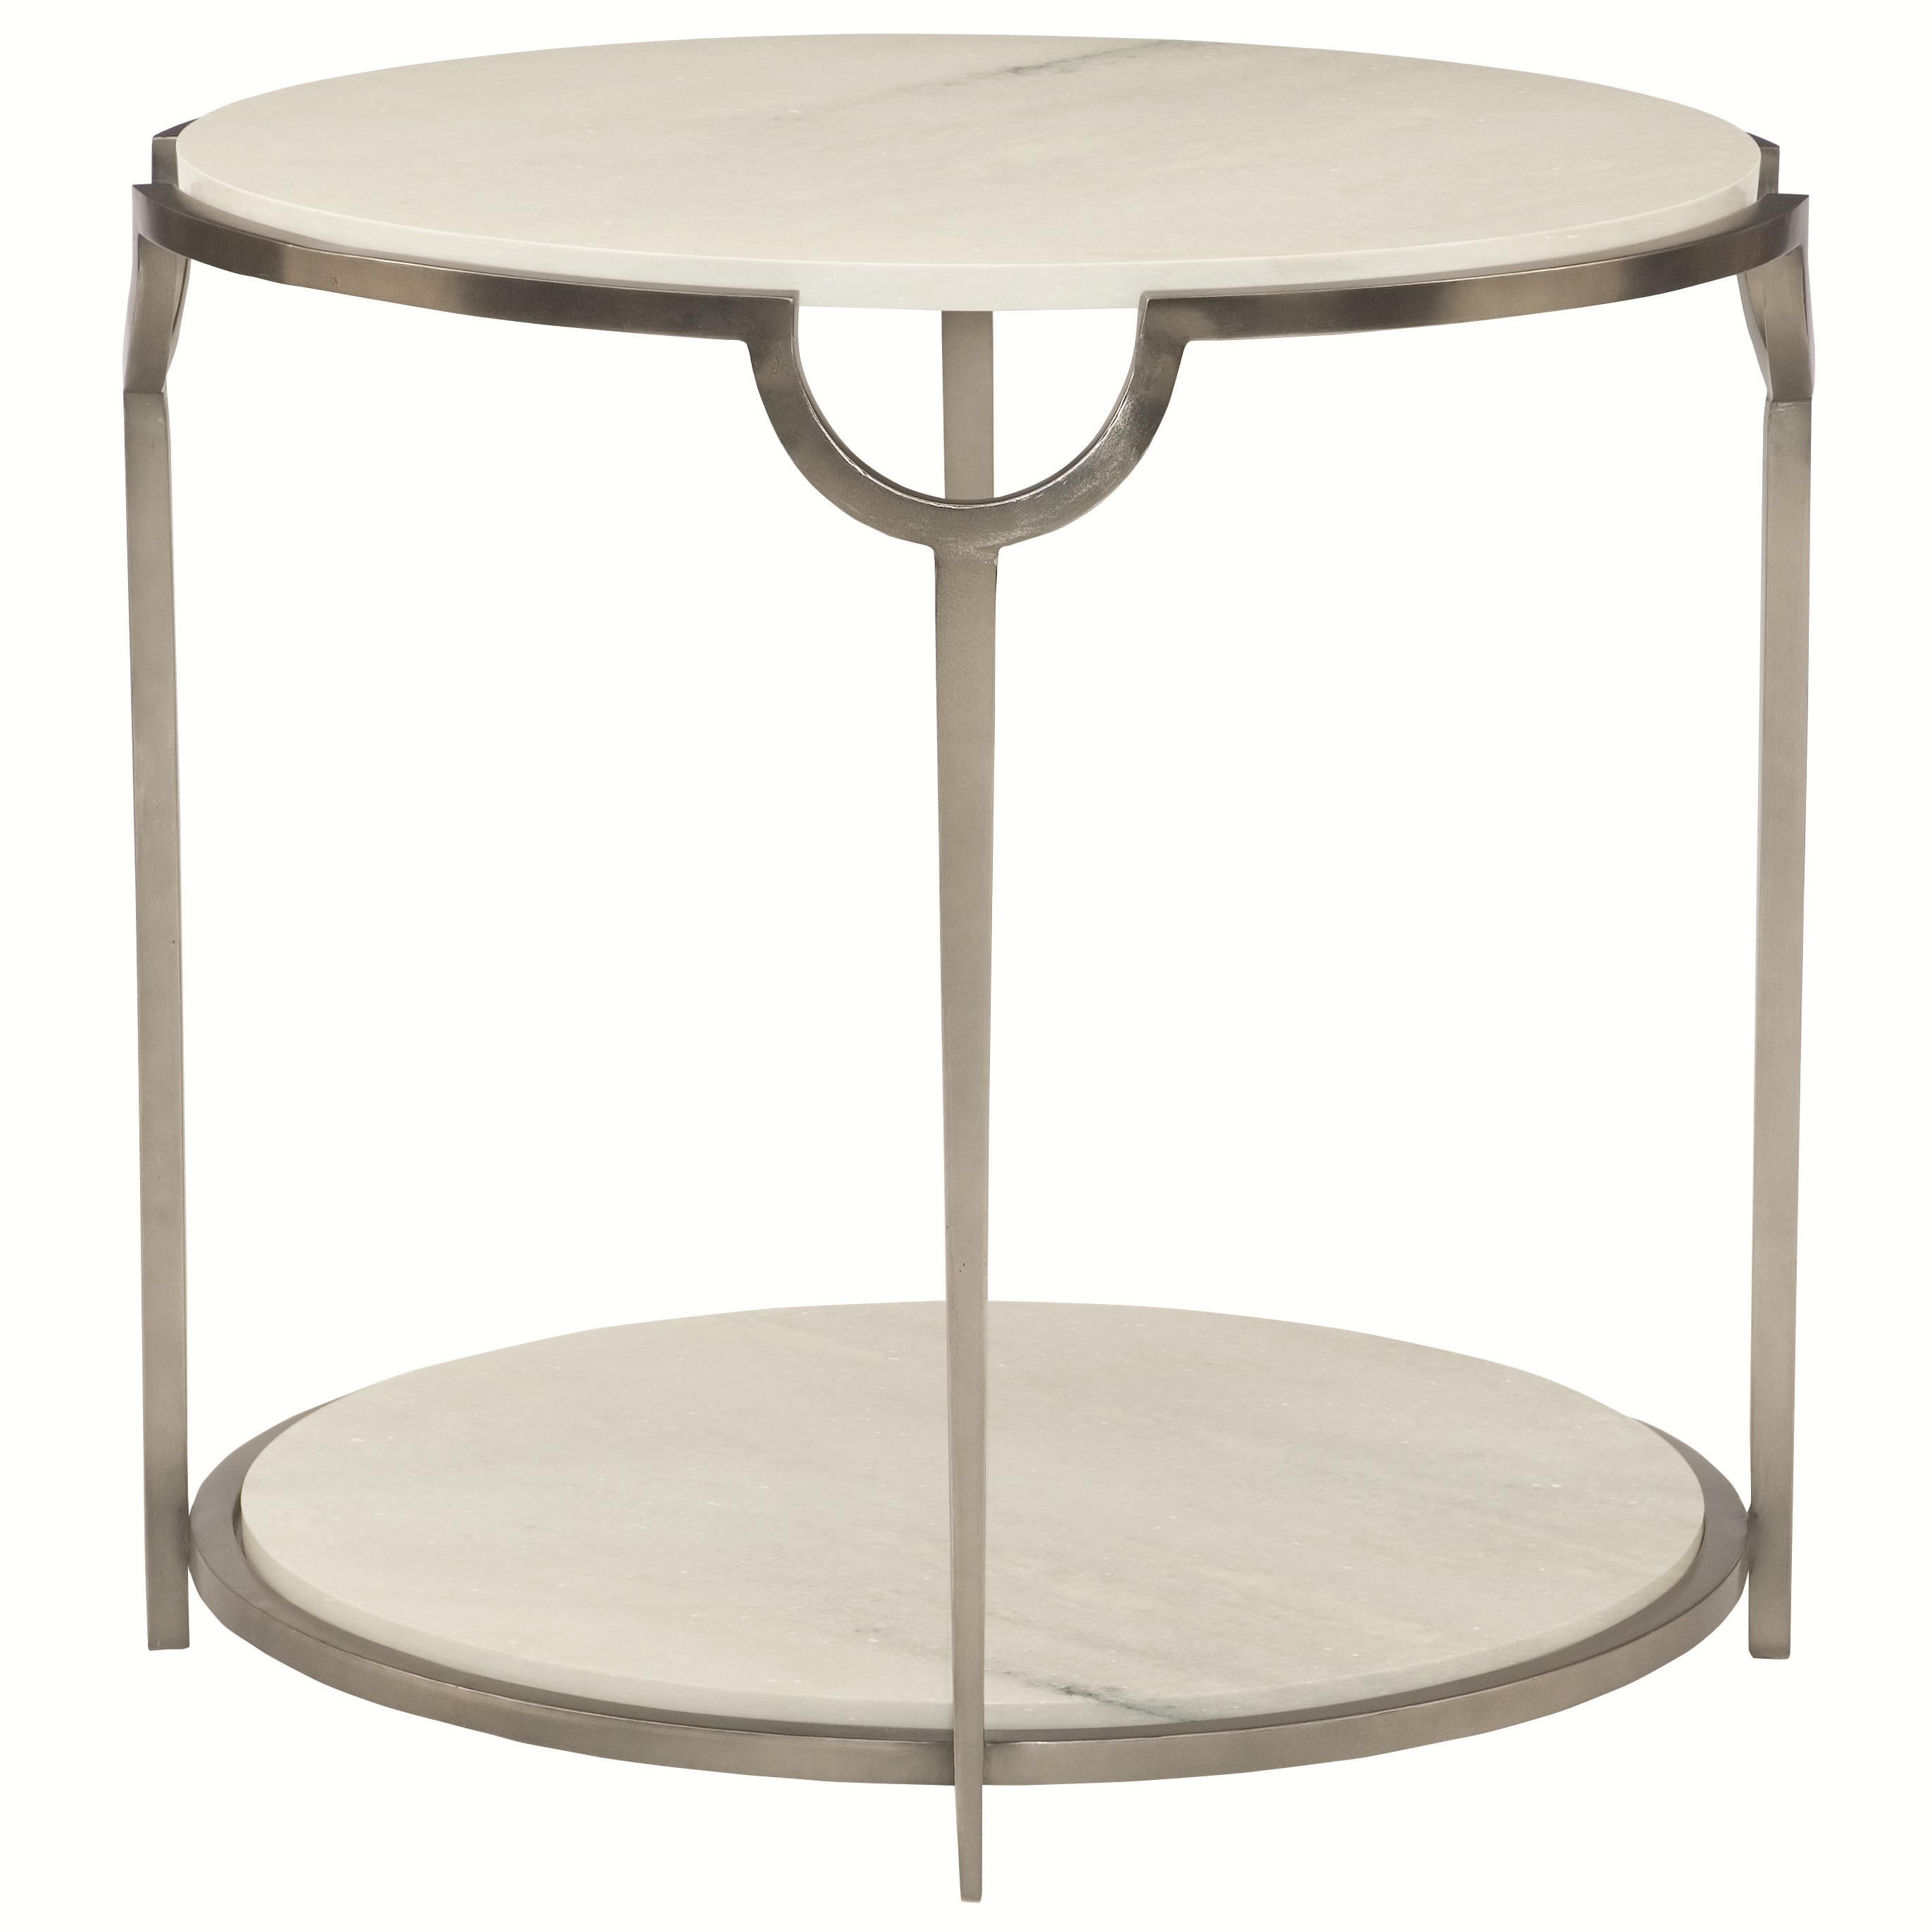 White Marble And Metal Round Accent Table: Bernhardt Morello Round End Table With Faux Marble Top